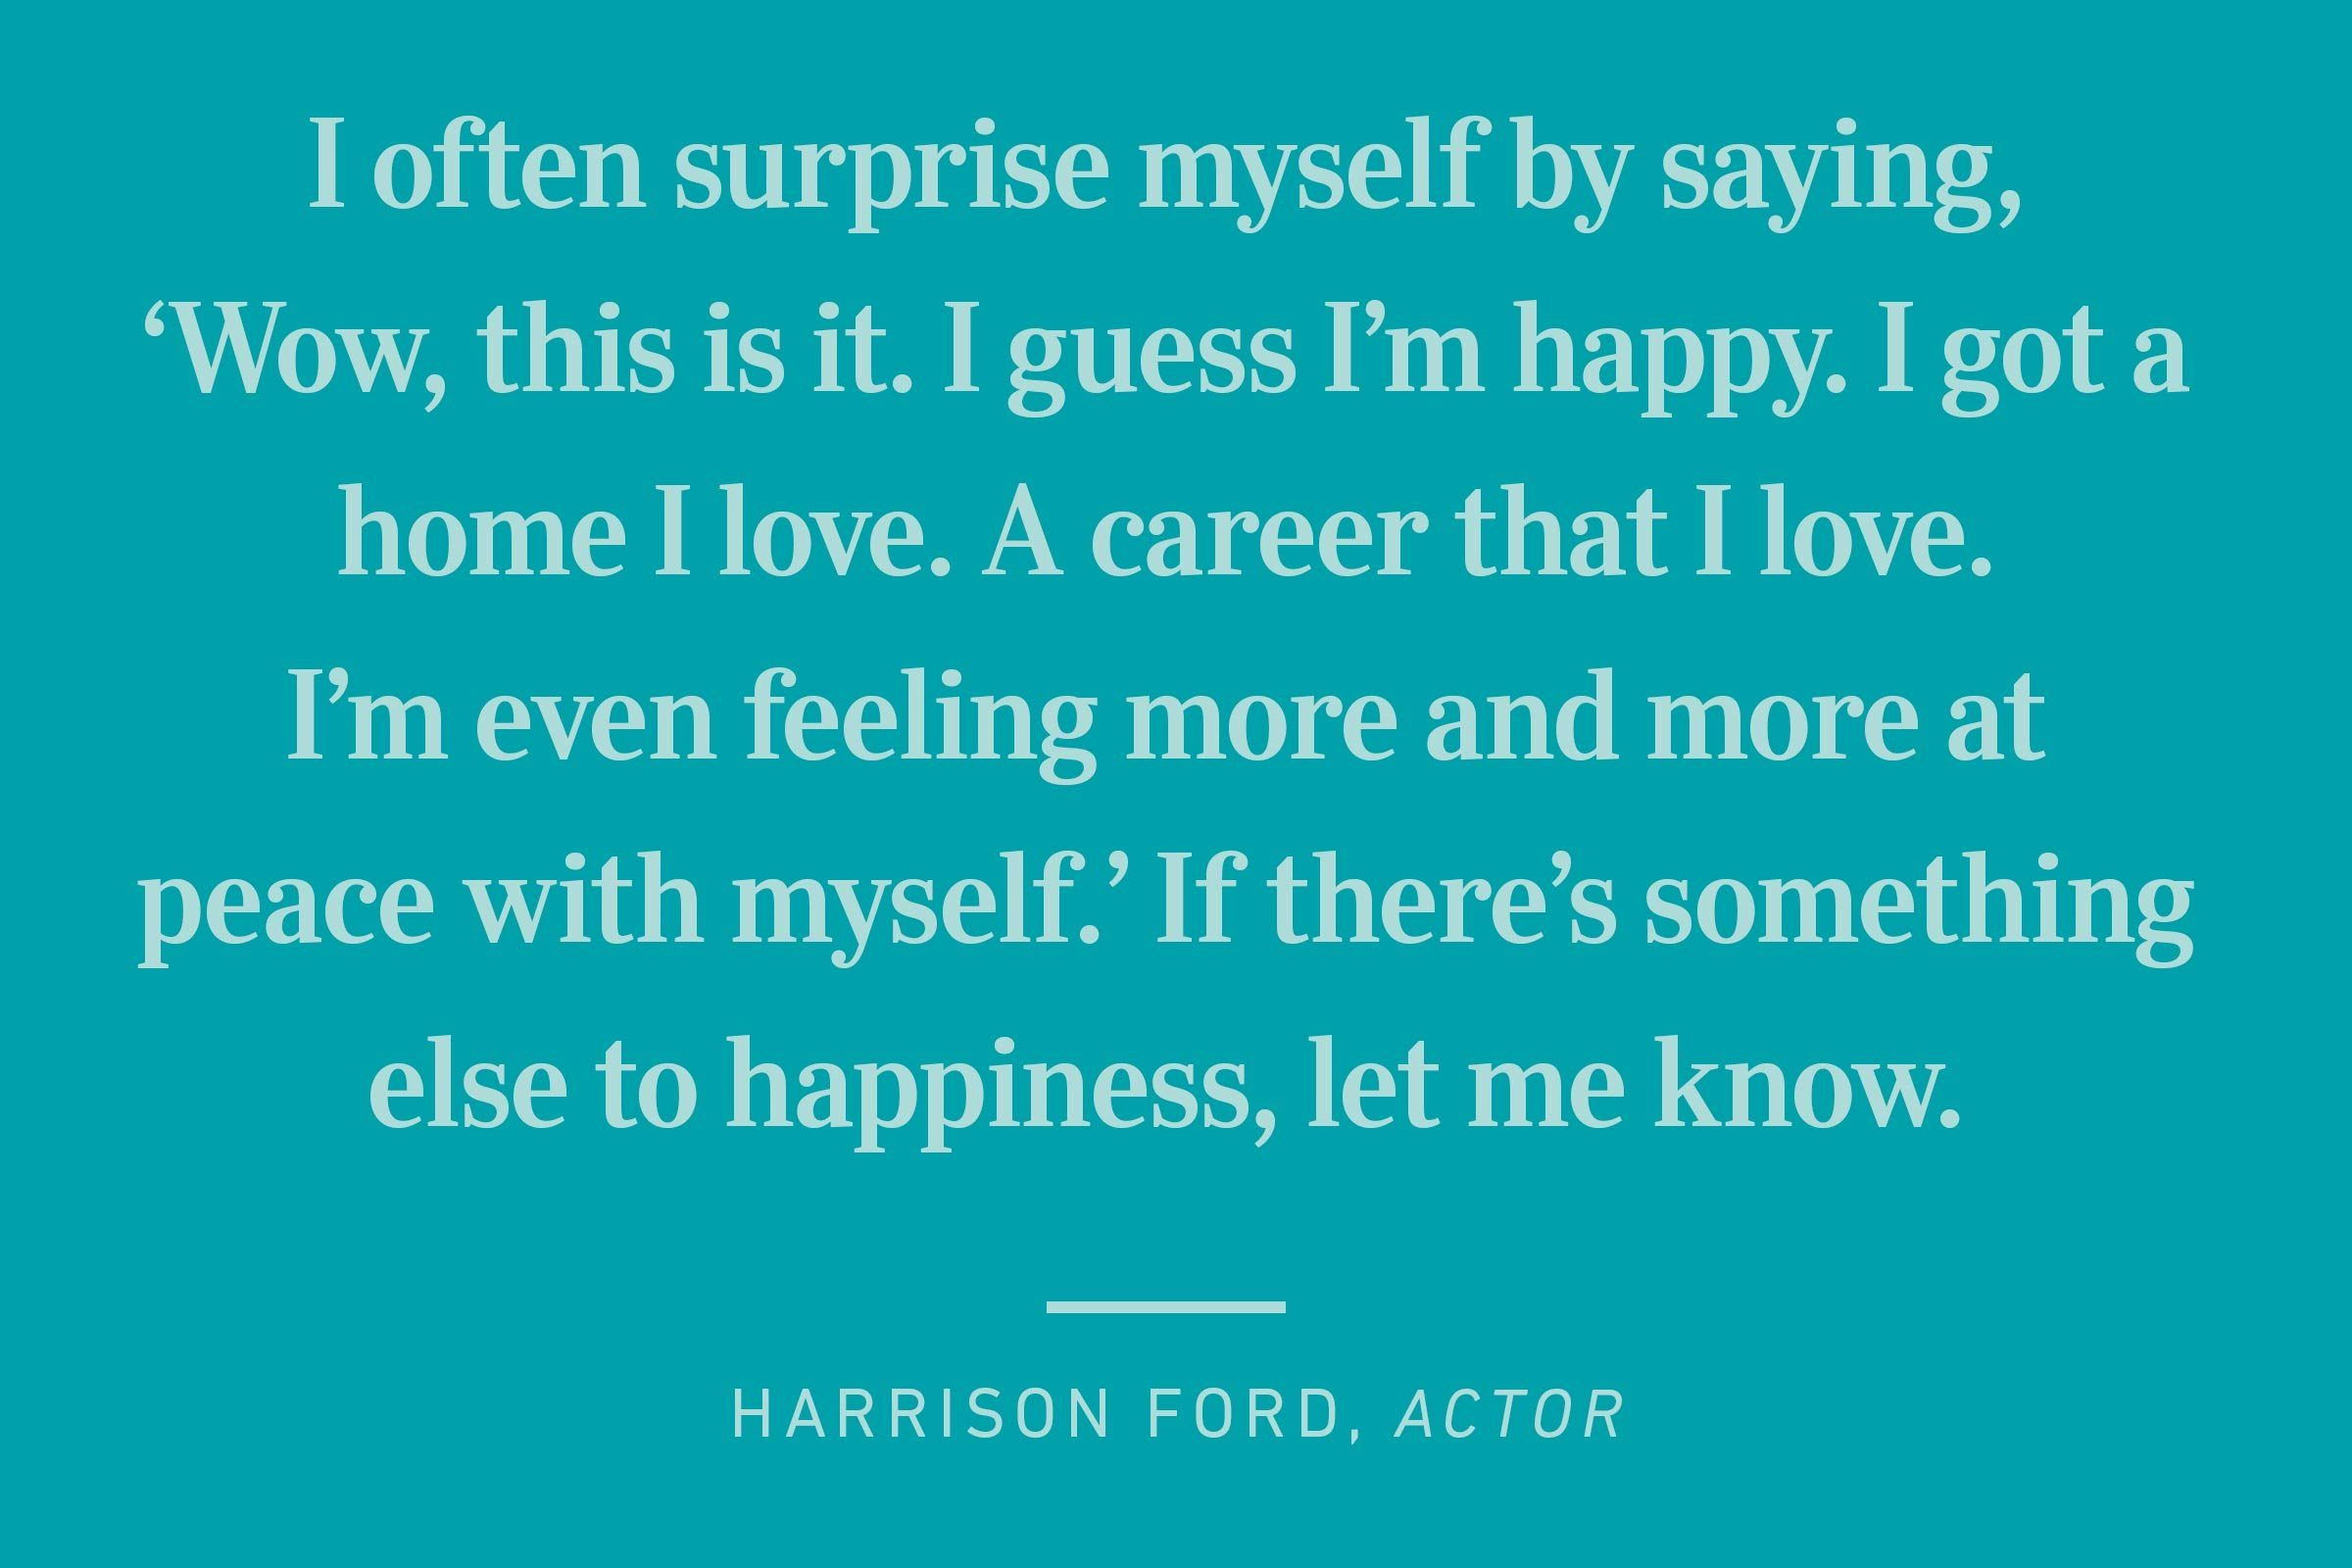 harrison ford happiness quote